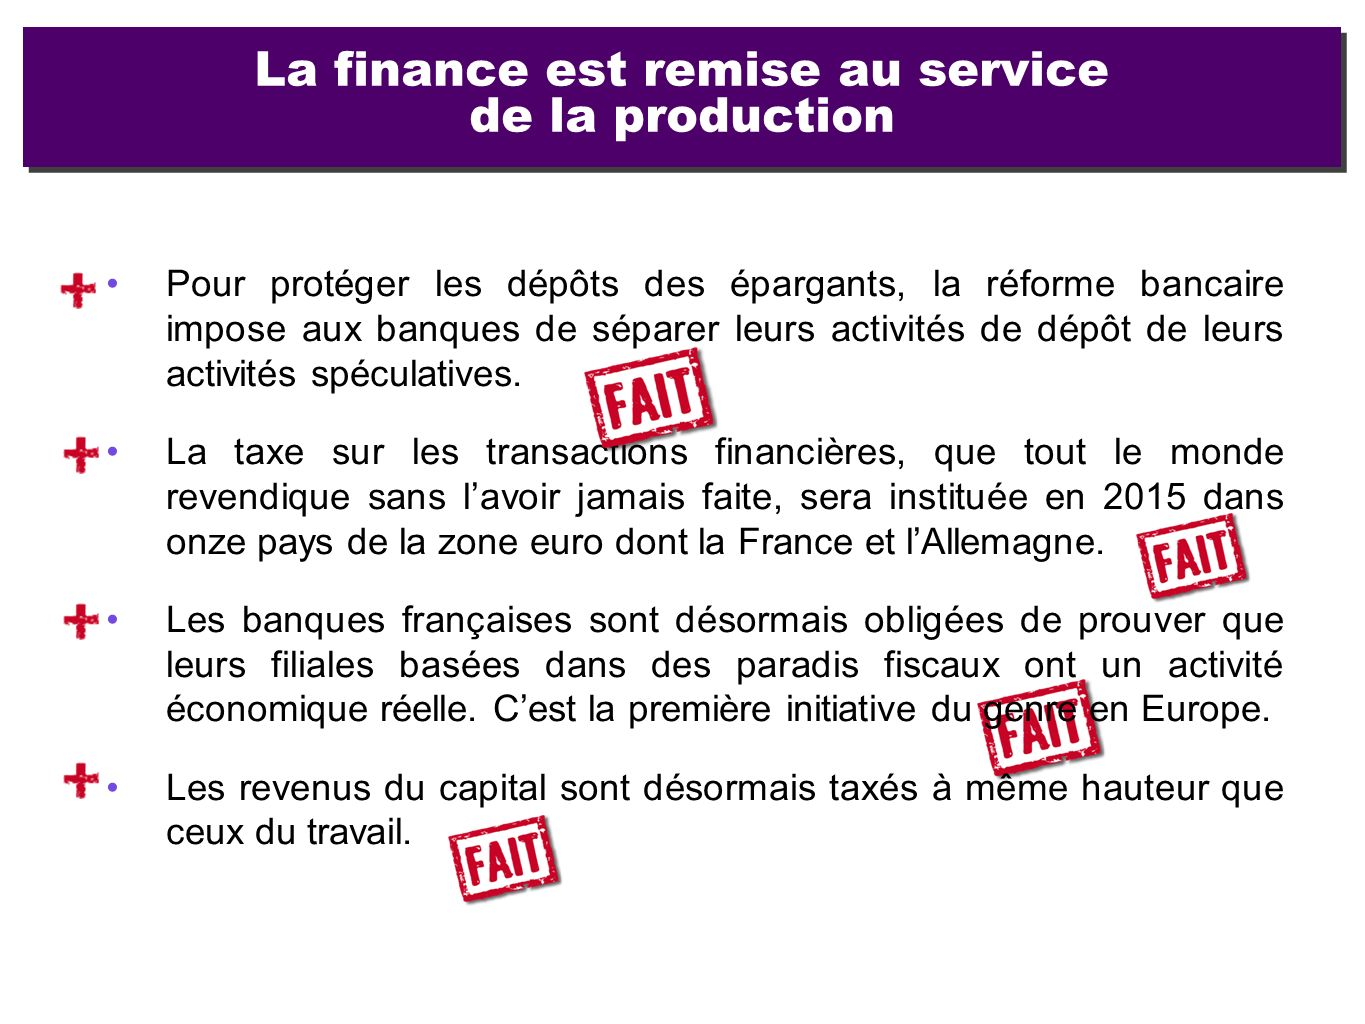 La finance est remise au service de la production